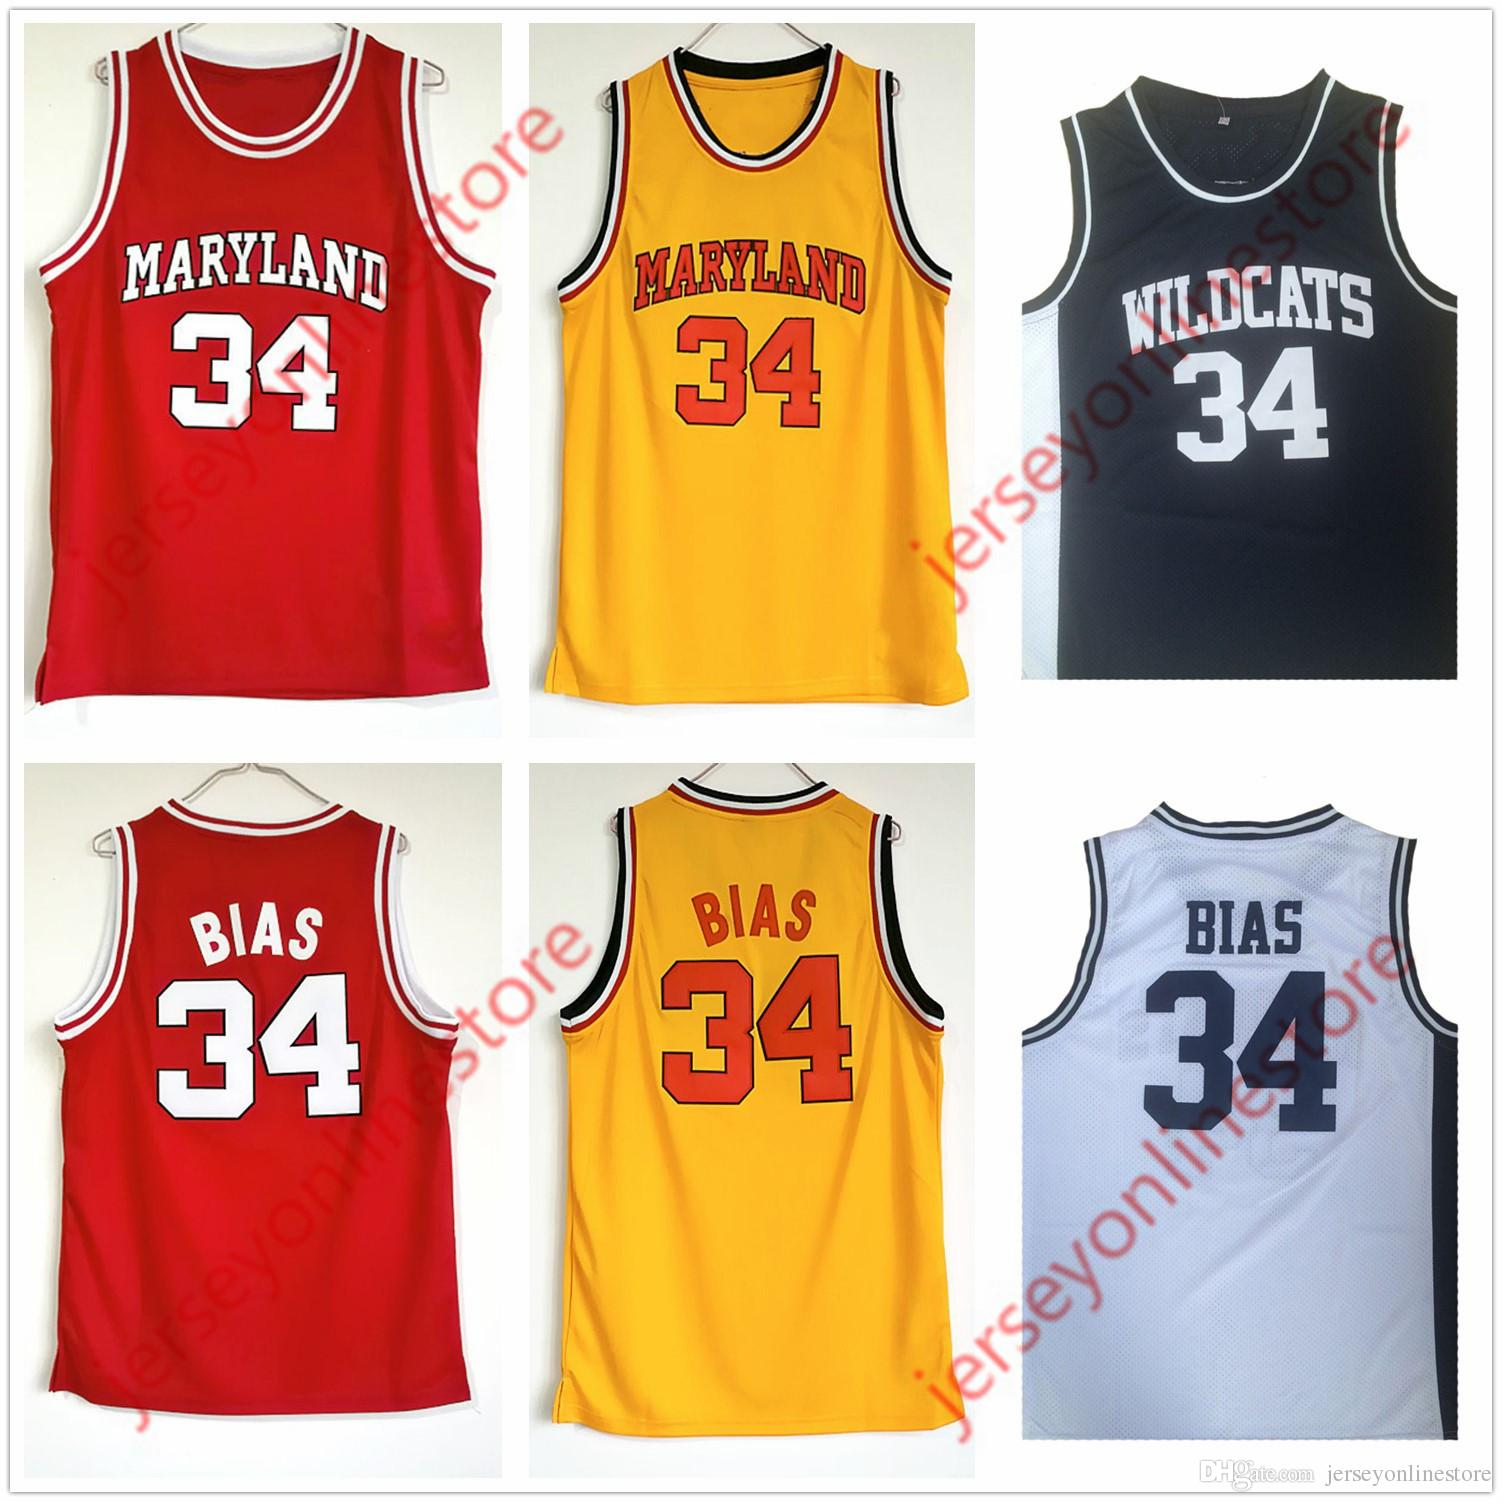 418d0a3e49b Mens Maryland Terps 34  Len Bias College Basketball Jersey Red Yellow Black  White Stitched Northwestern Wildcats High School Jerseys Canada 2019 From  ...